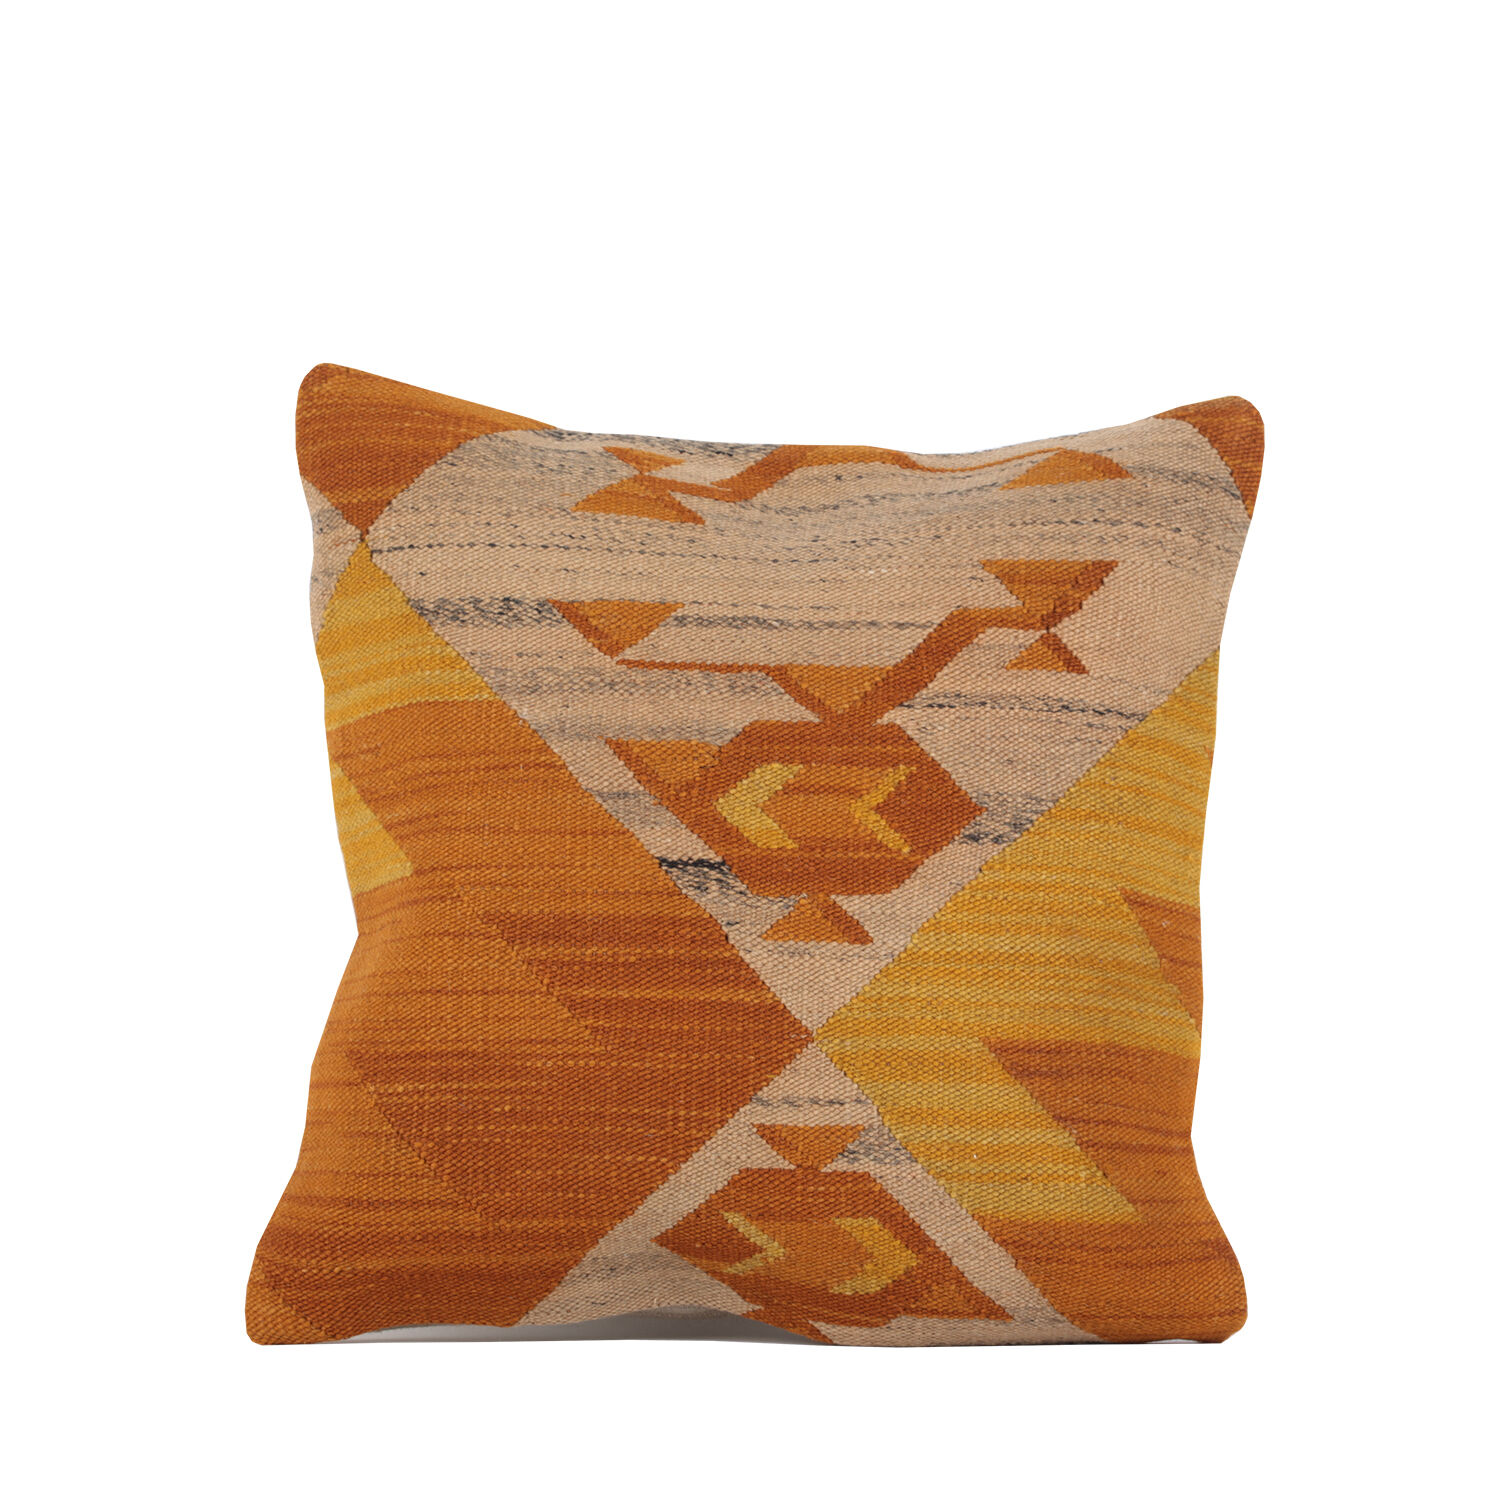 19  x 19  Pillow Cover Kilim Pillow Cover VINTAGE FAST Shipment With UPS 10933